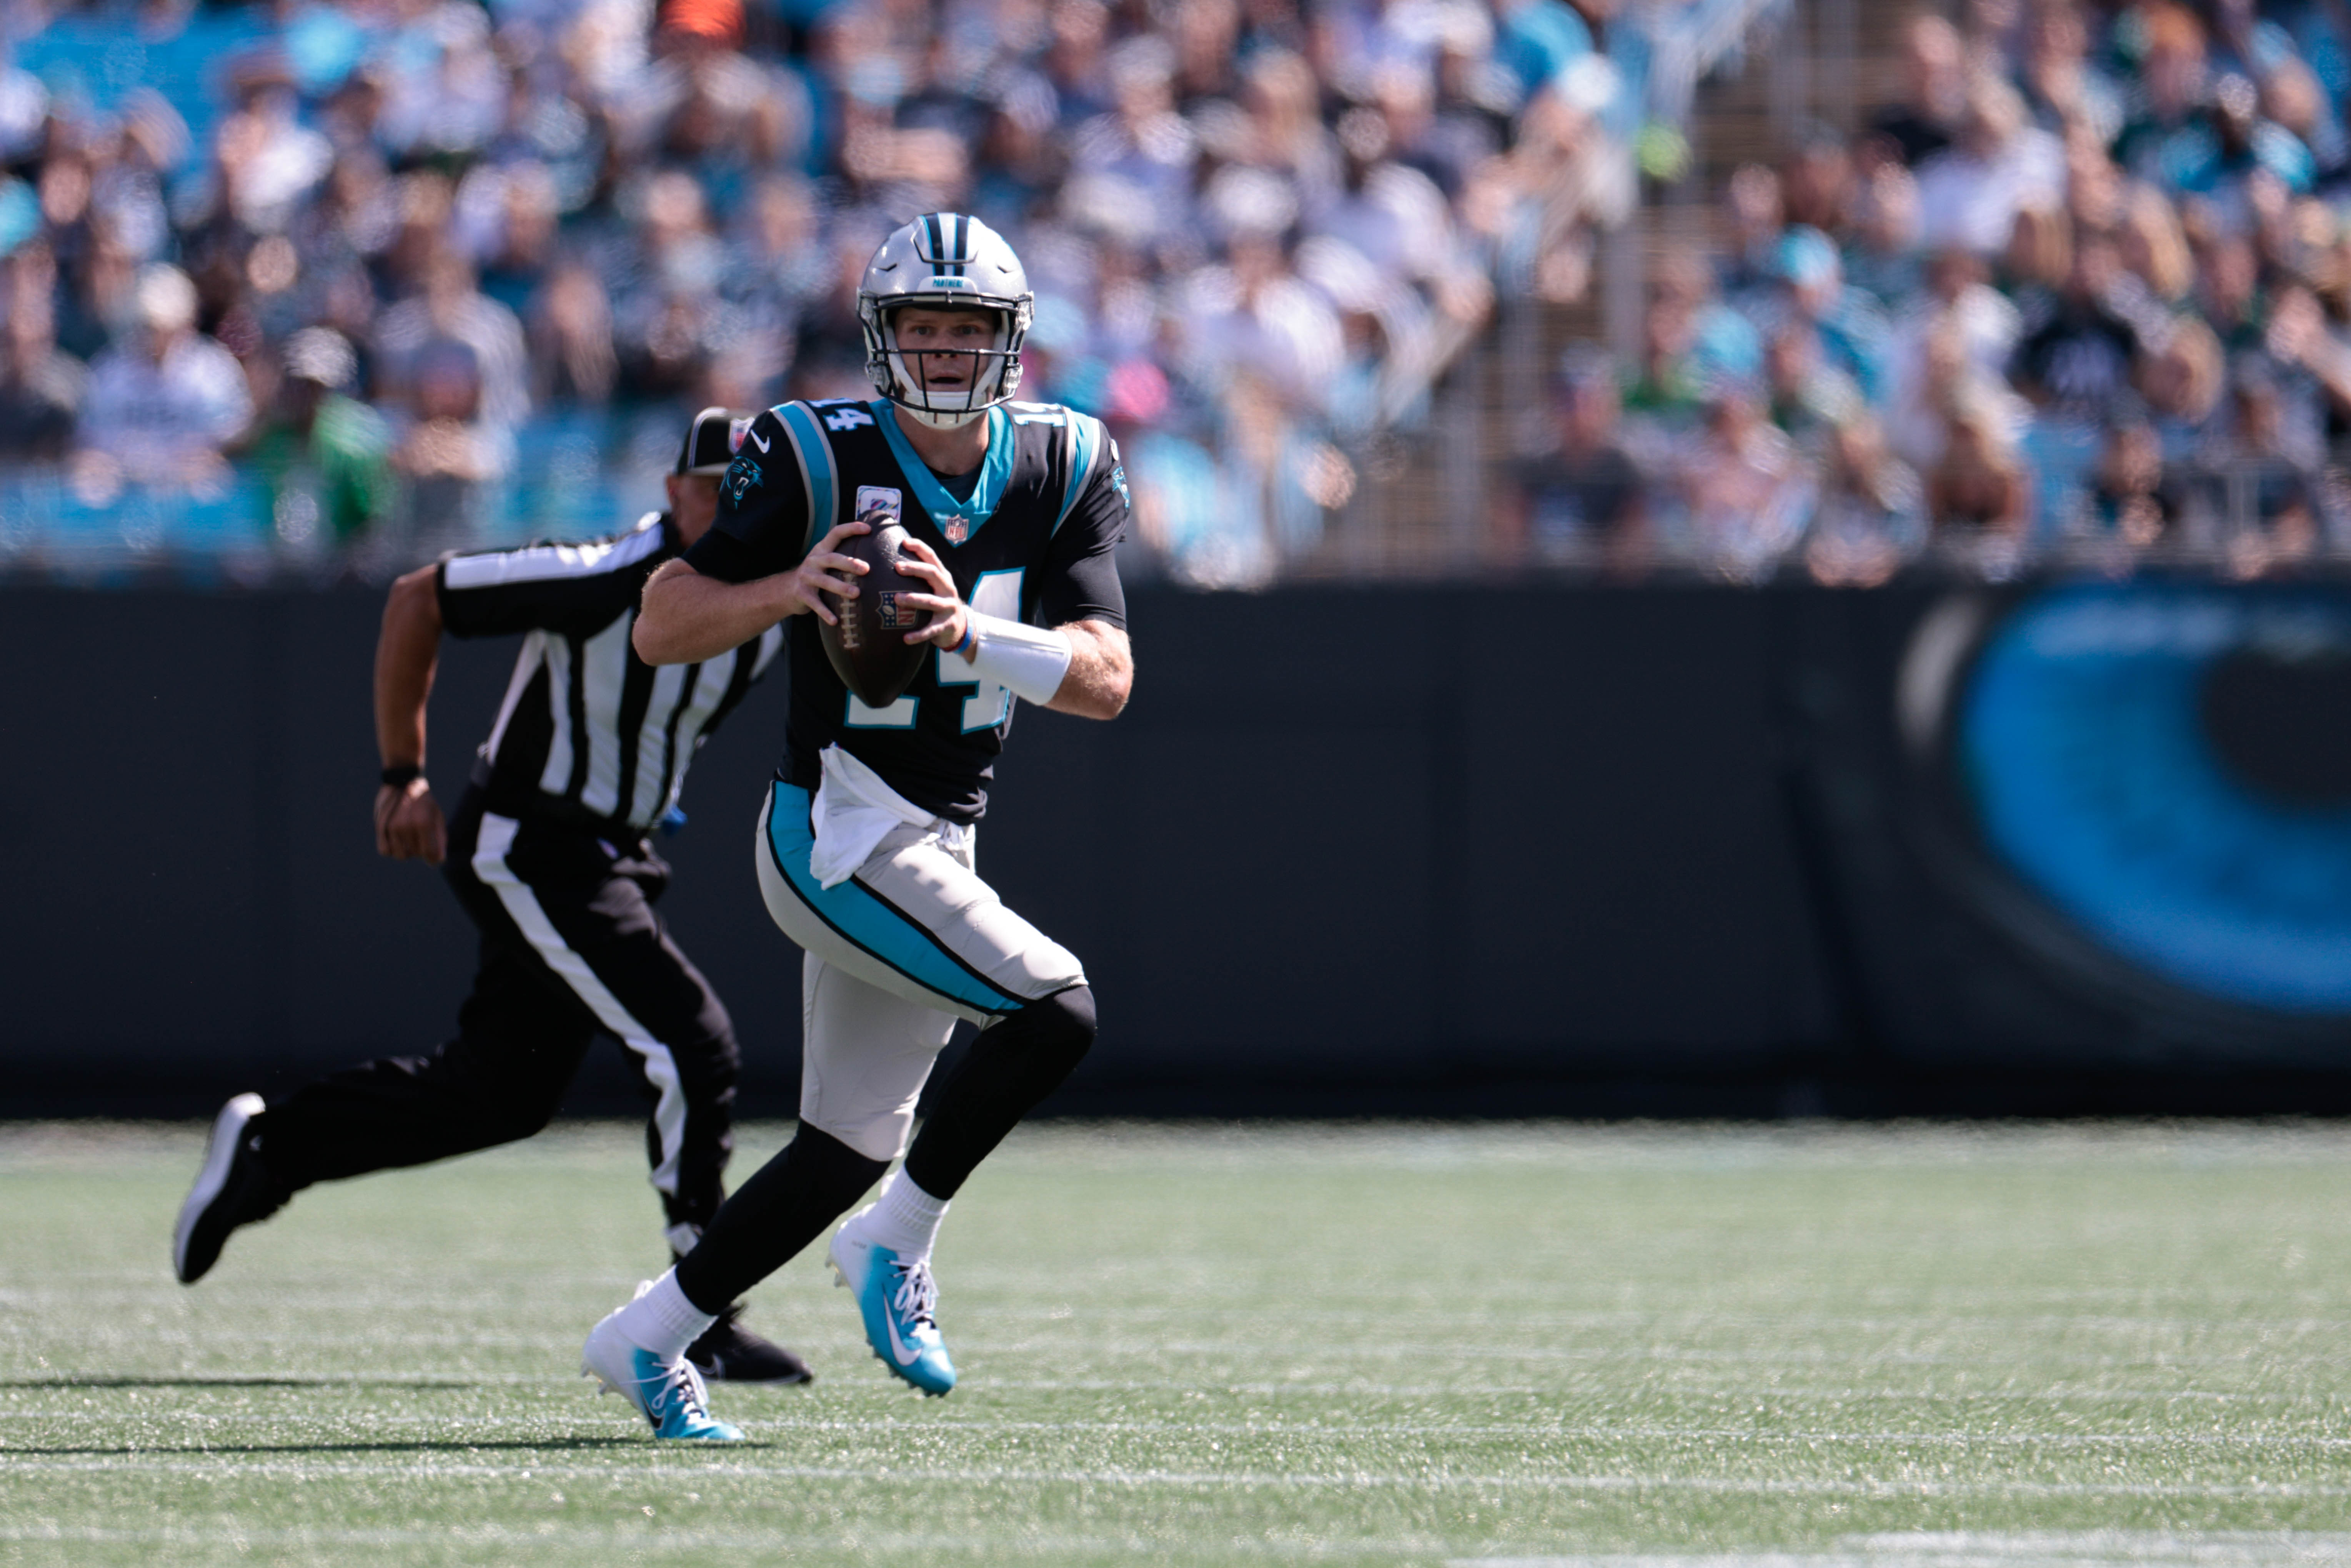 Carolina Panthers quarterback Sam Darnold (14) scrambles with the ball during the first half against the Philadelphia Eagles at Bank of America Stadium.